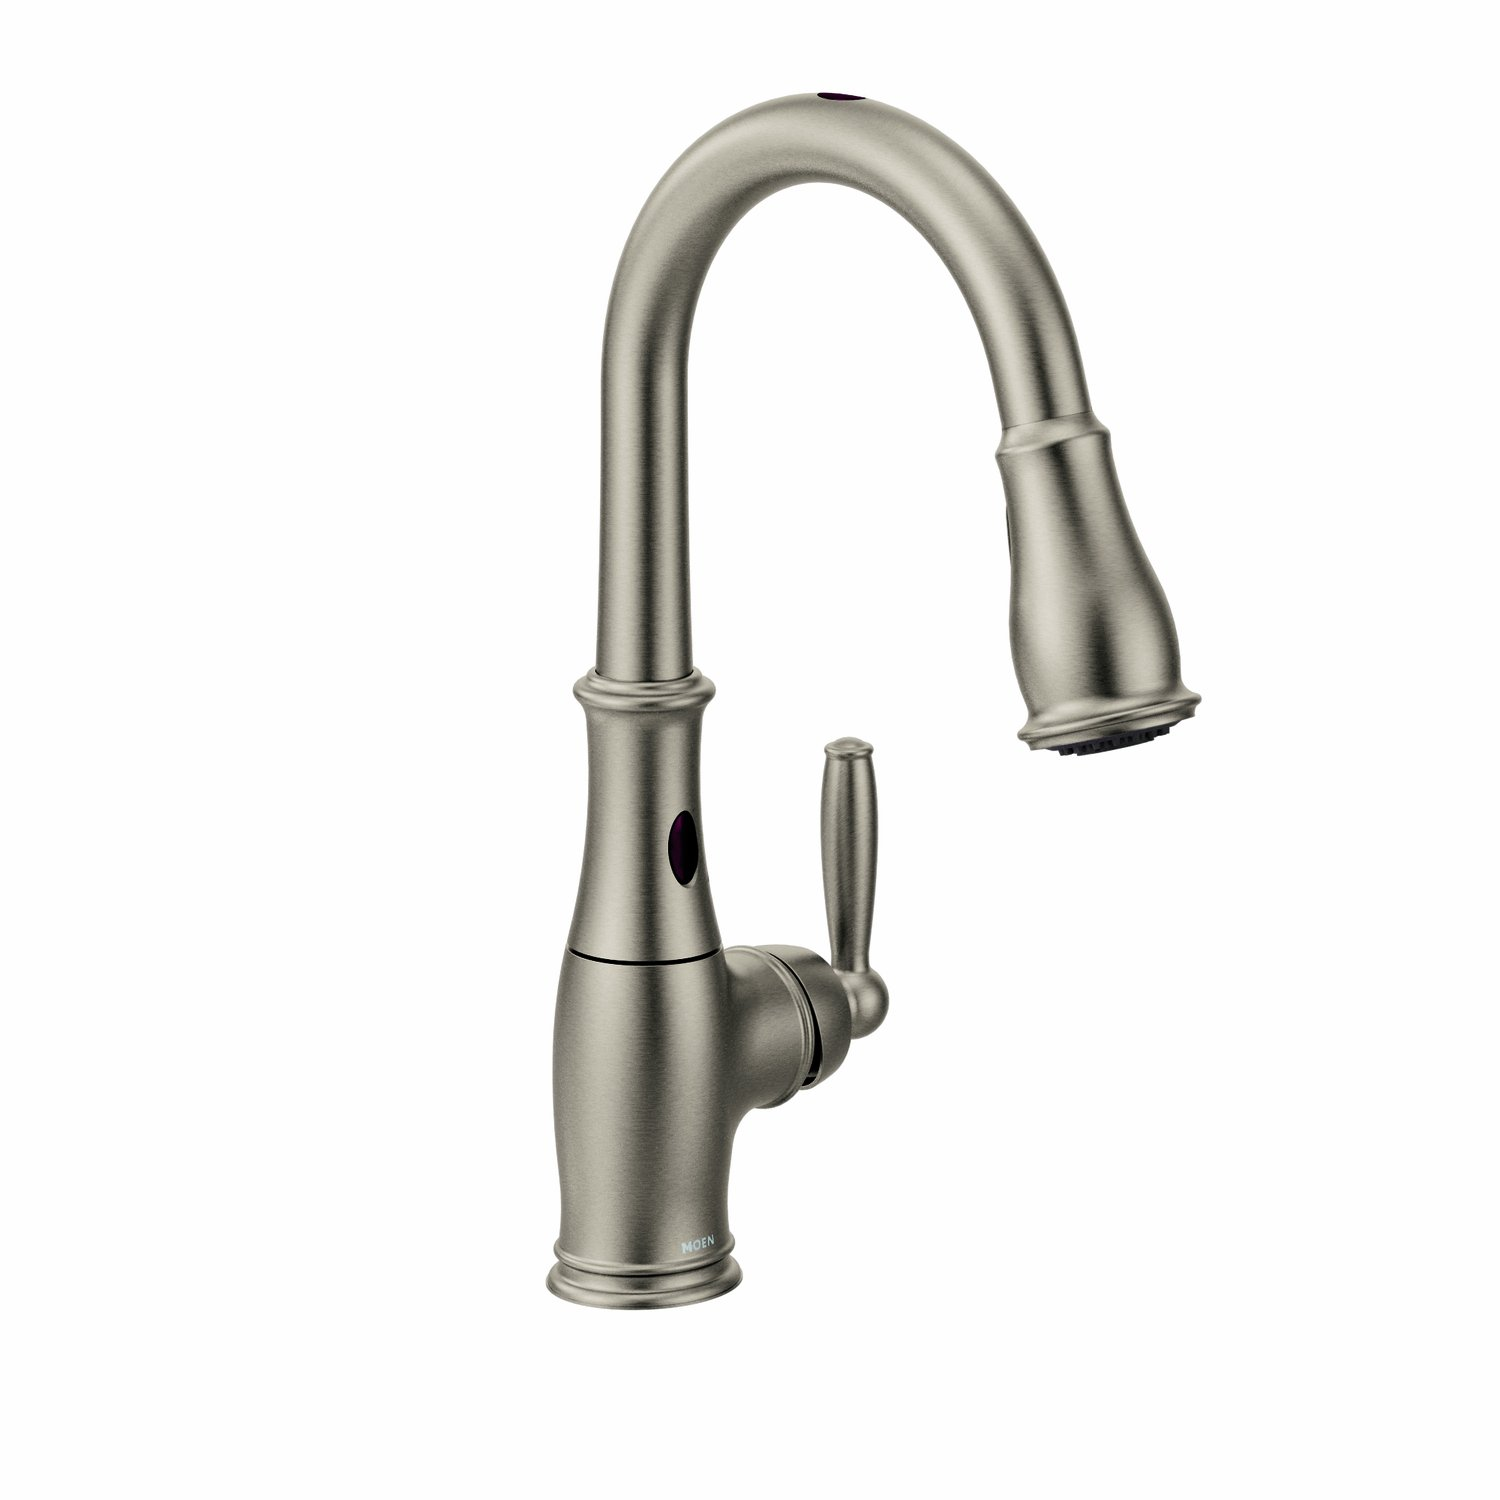 Etonnant Moen Brantford Motionsense Touchless One Handle High Arc Pulldown Kitchen  Faucet Featuring Reflex, Spot Resist Stainless (7185ESRS)   Touch On  Kitchen Sink ...